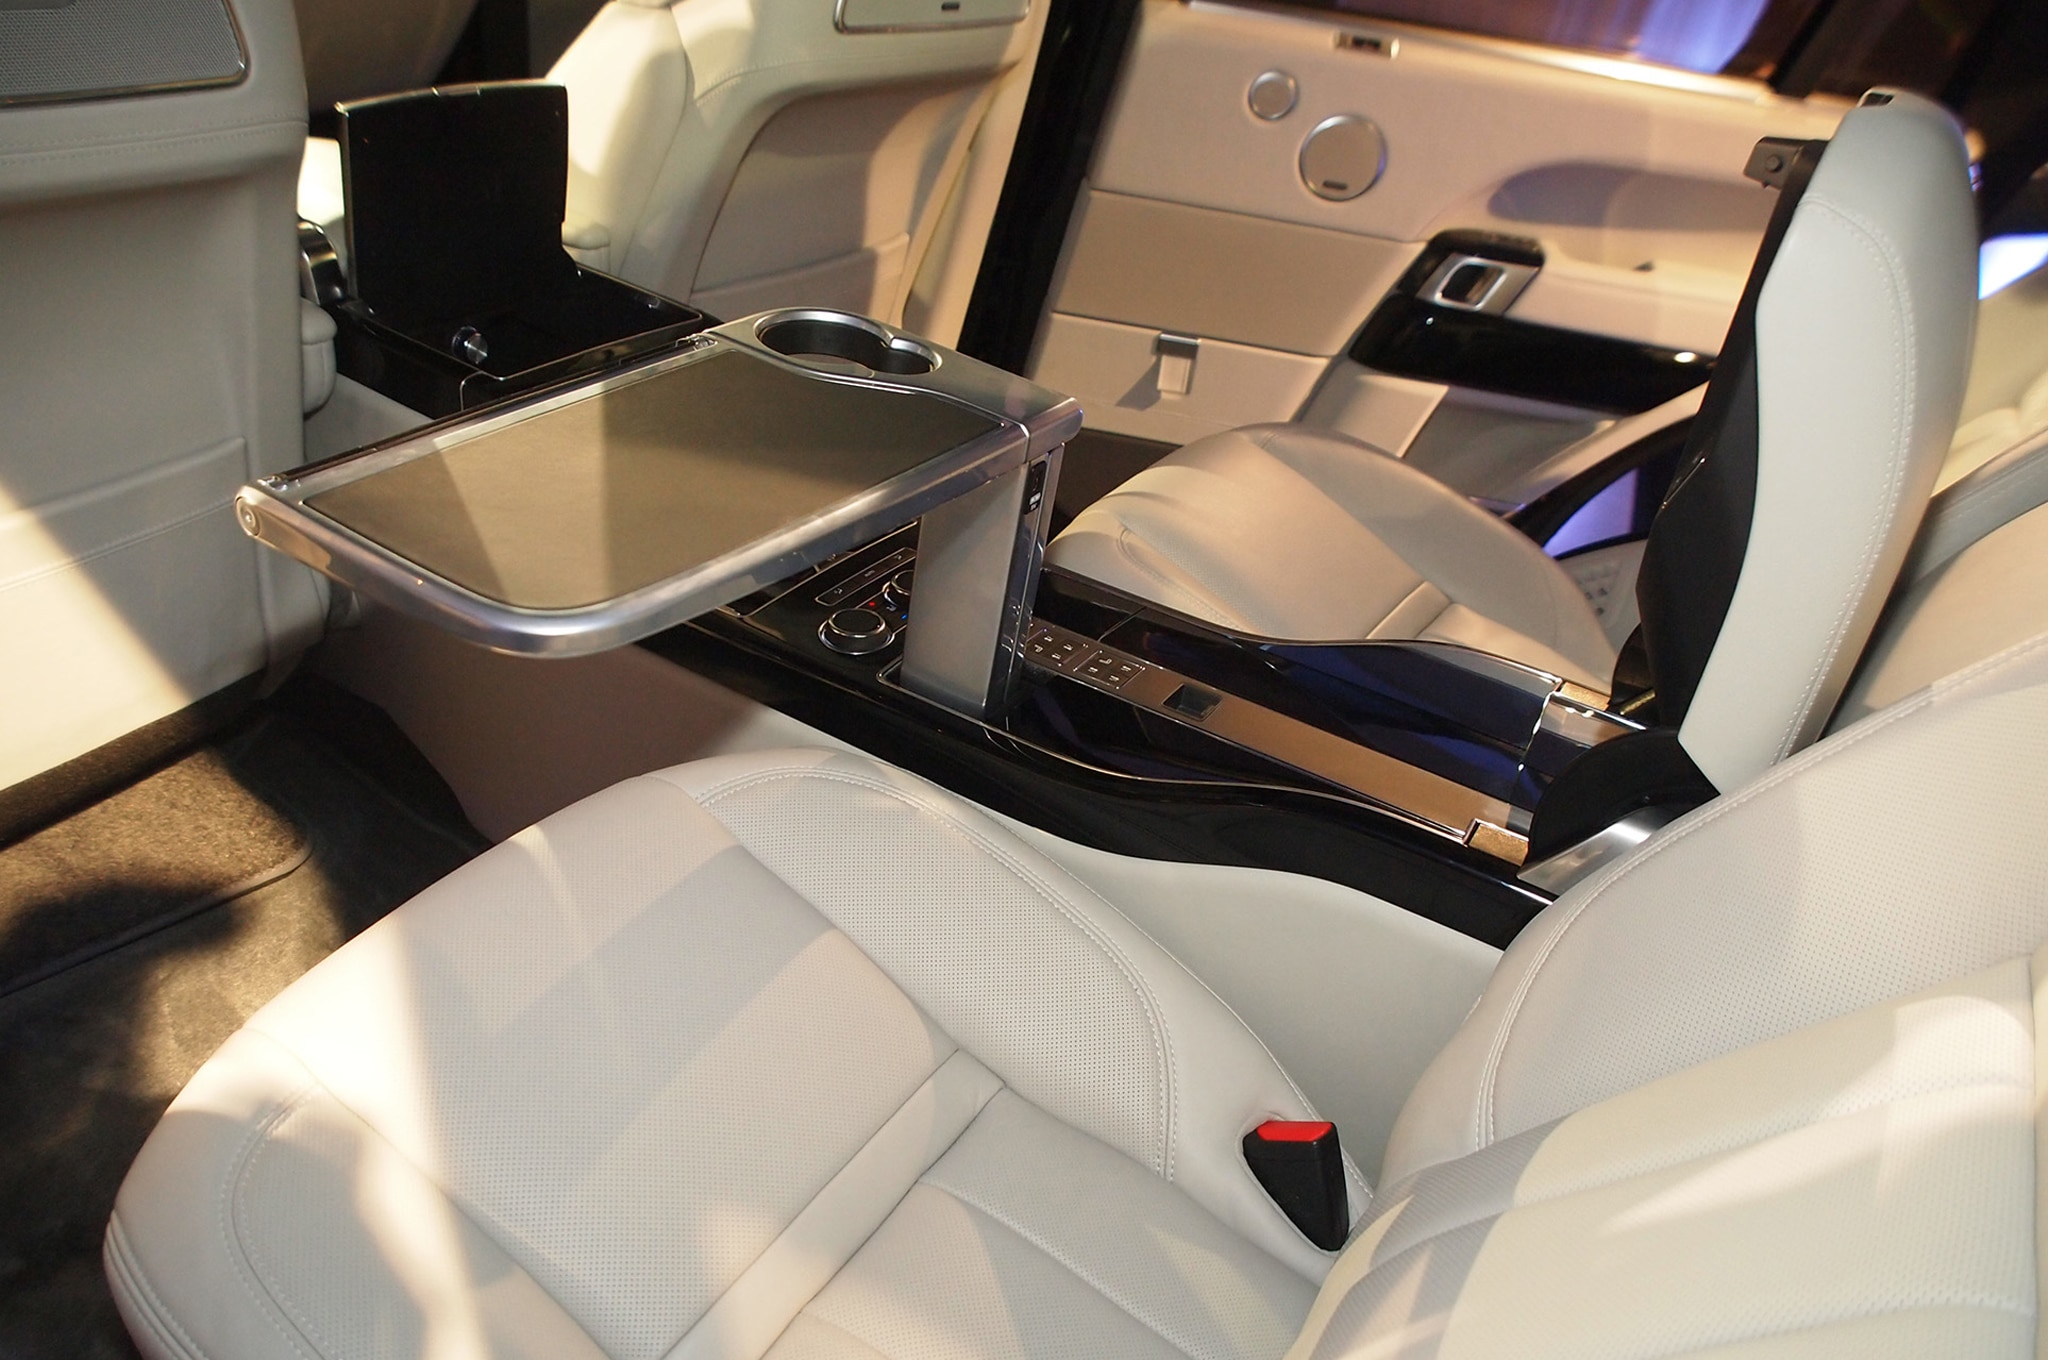 http://st.automobilemag.com/uploads/sites/11/2015/03/2016-Land-Rover-Range-Rover-SVAutobiography-rear-interior-seats.jpg